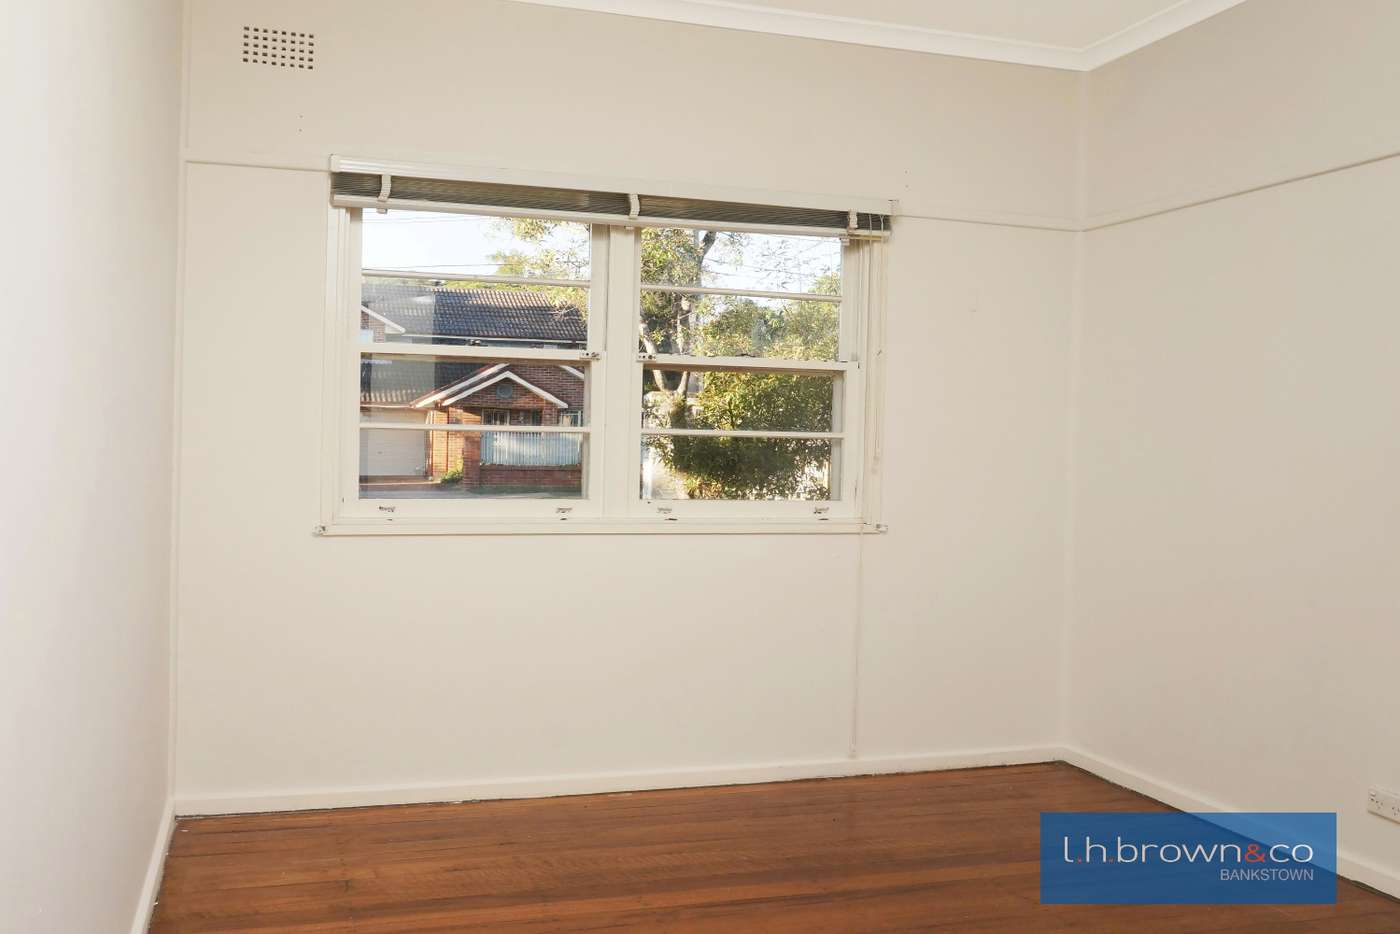 Sixth view of Homely house listing, 1 Carinya Ave, Beverly Hills NSW 2209